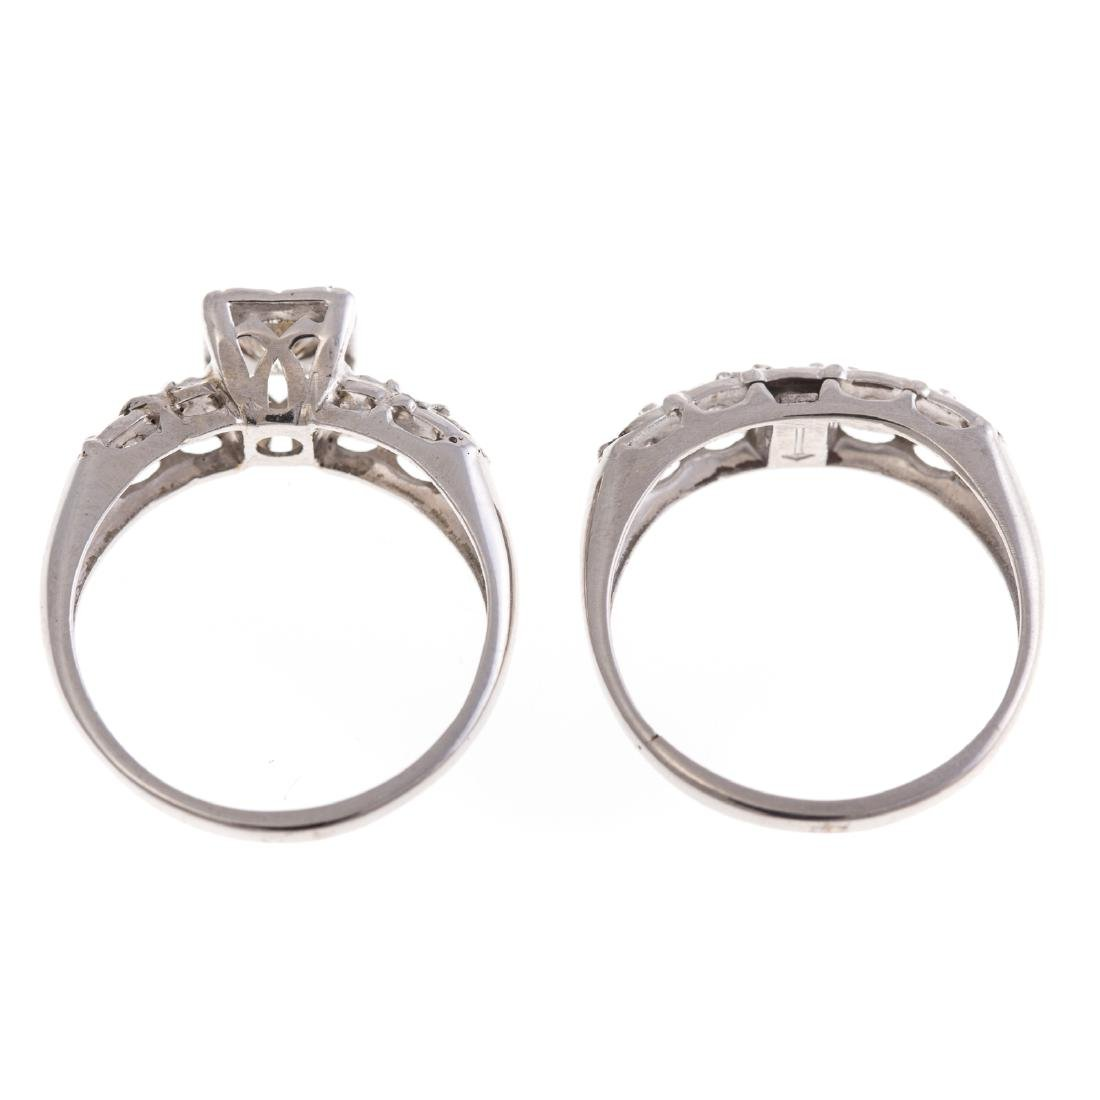 A Lady's Diamond Engagement Set in 14K White Gold - 4